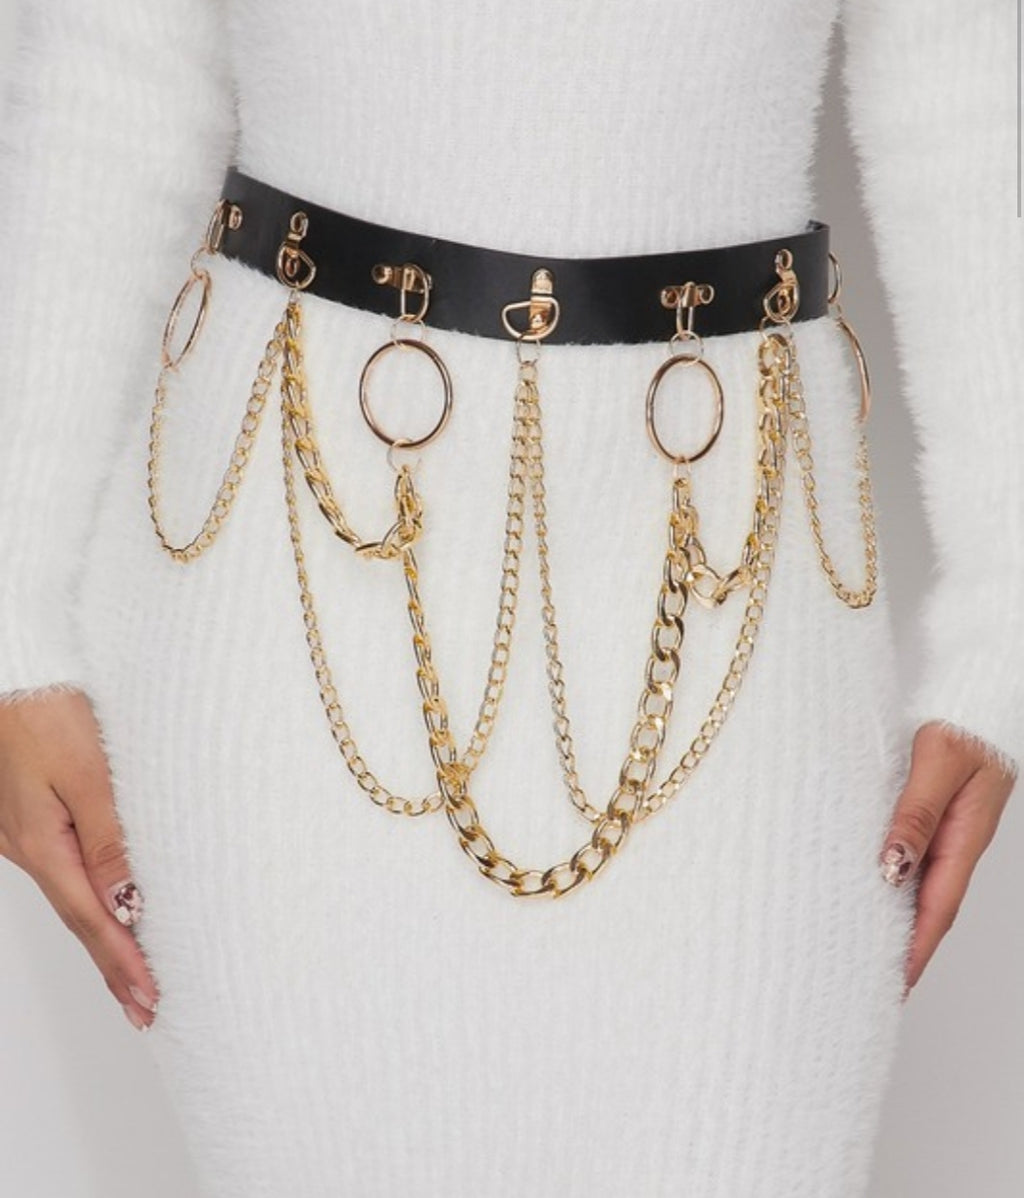 Miss Petty's Chained Up Belt